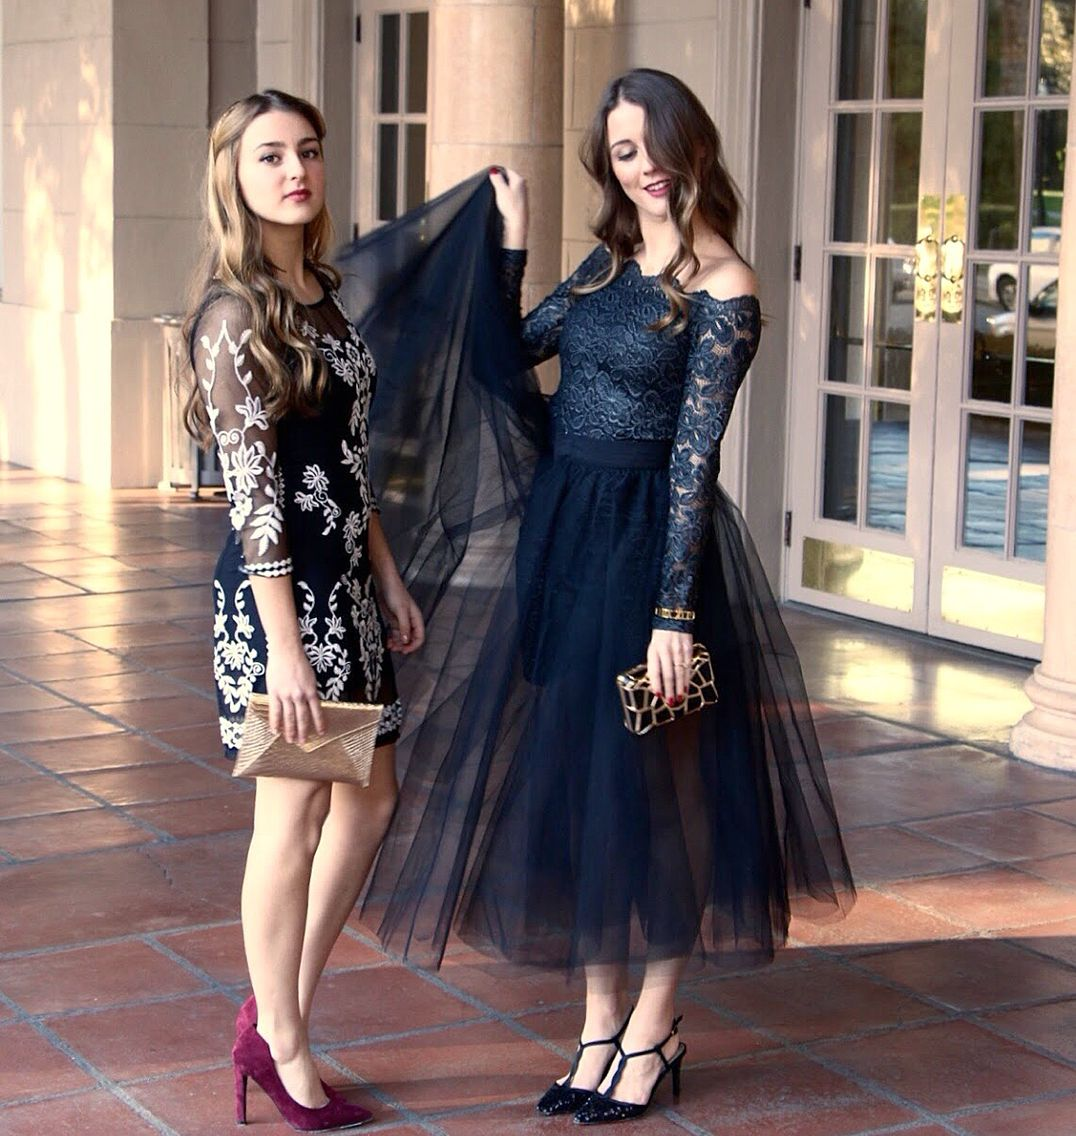 Blogger Street Style Nye Outfit Party Outfit Inspiration Tulle Skirt Lbd Black Dress Midi Skirt Space 46 T Tulle Dress Space 46 Tulle Skirt Party Outfit [ 1136 x 1076 Pixel ]